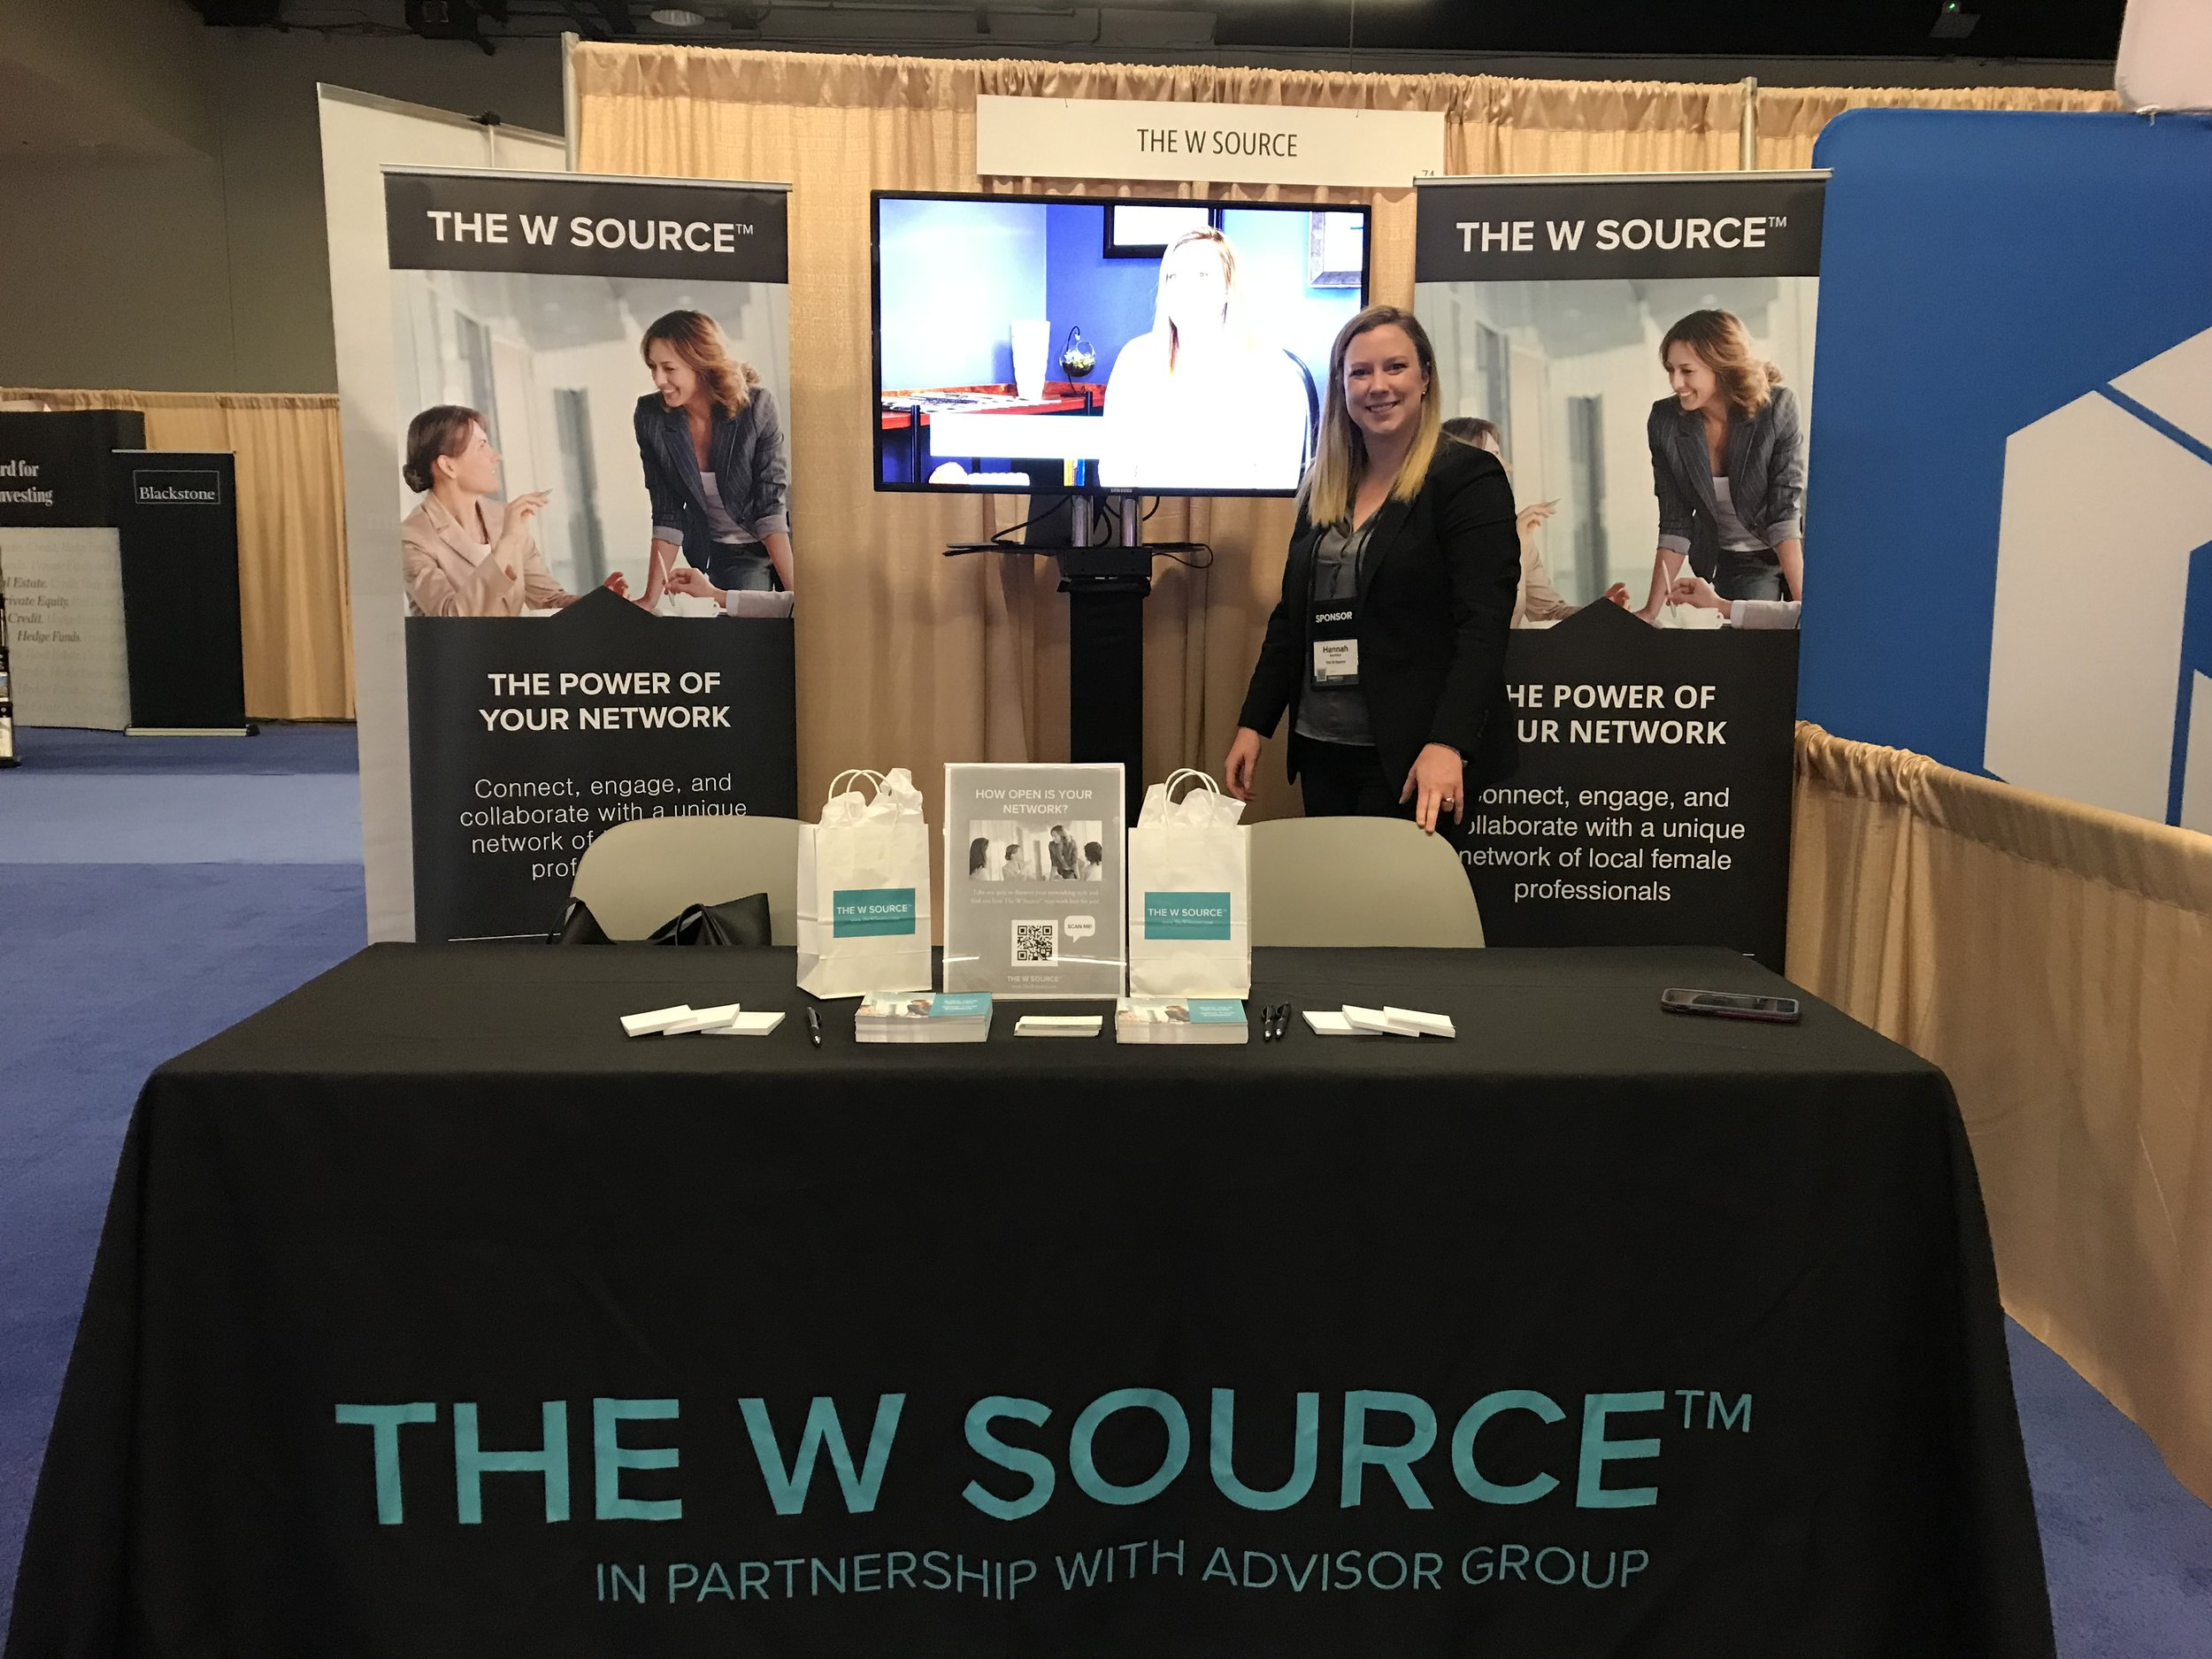 Cofounder of The W Source™ at The W Source™ booth ready to greet Advisor Group ConnectEd attendees.